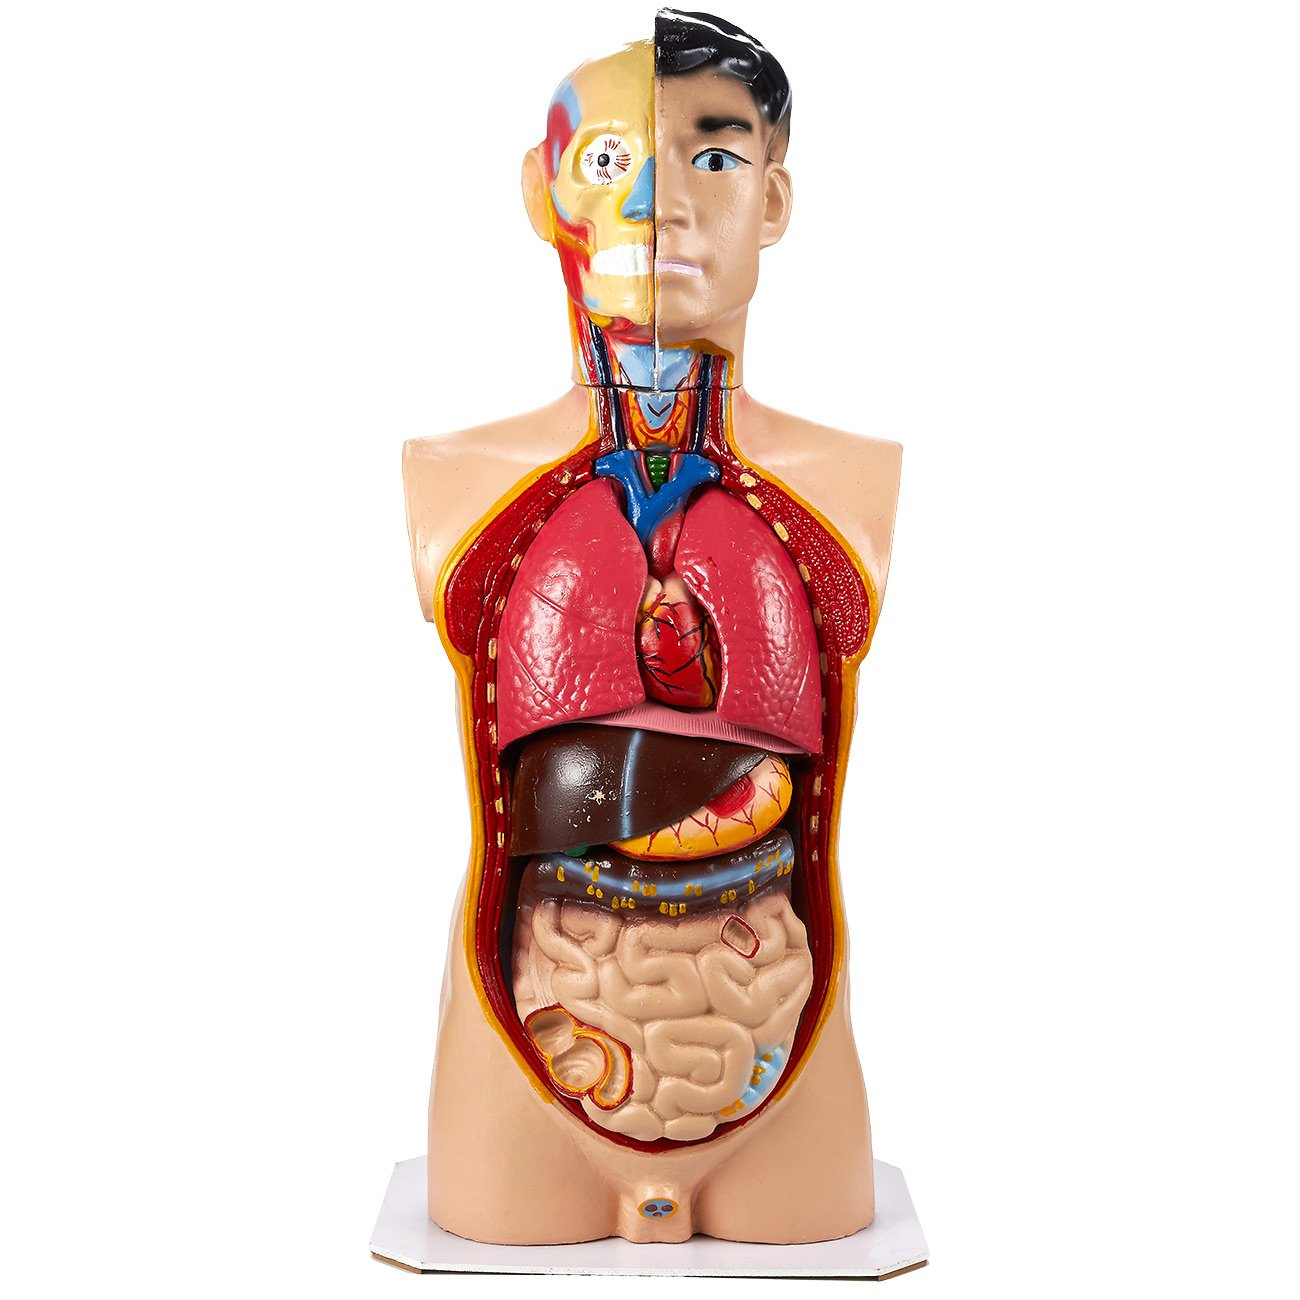 Human Torso Model - 30.5-inch - Anatomical Replica - Perfect Teaching Tool for Biology and Anatomy Classes, 13.7 x 30.5 x 9.7 inches Juvale